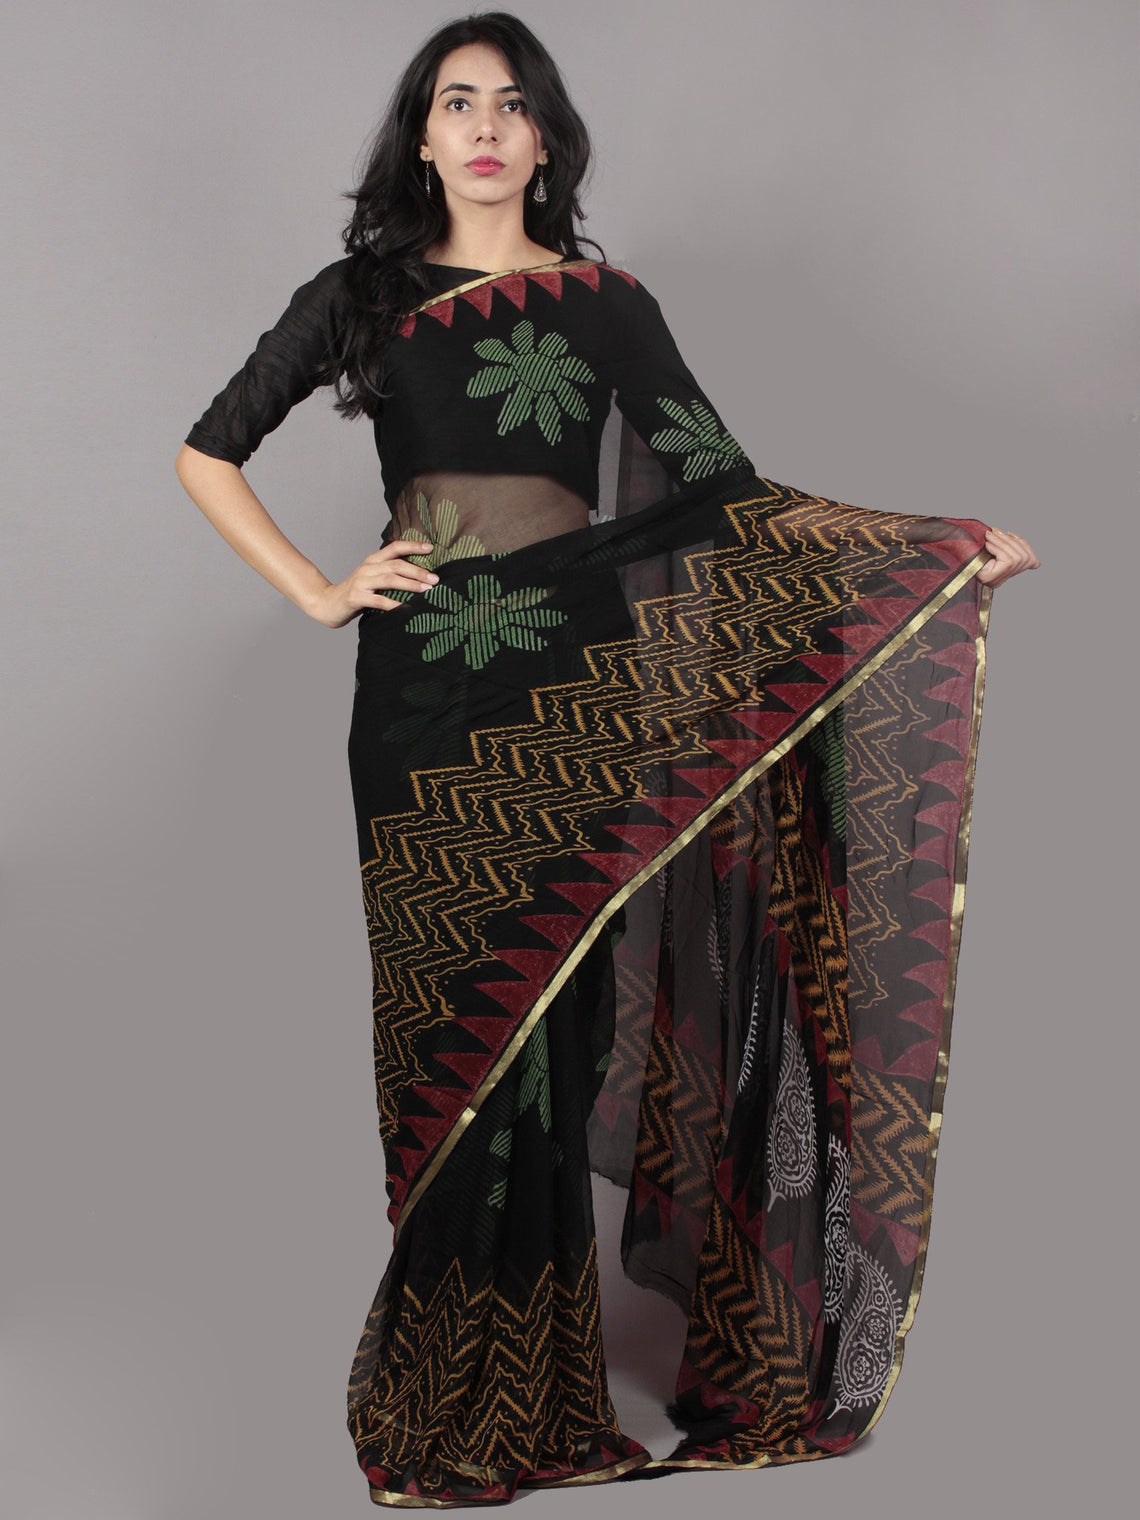 Black Green Yellow Red Hand Block Printed in Natural Colors Chiffon Saree - S031701662